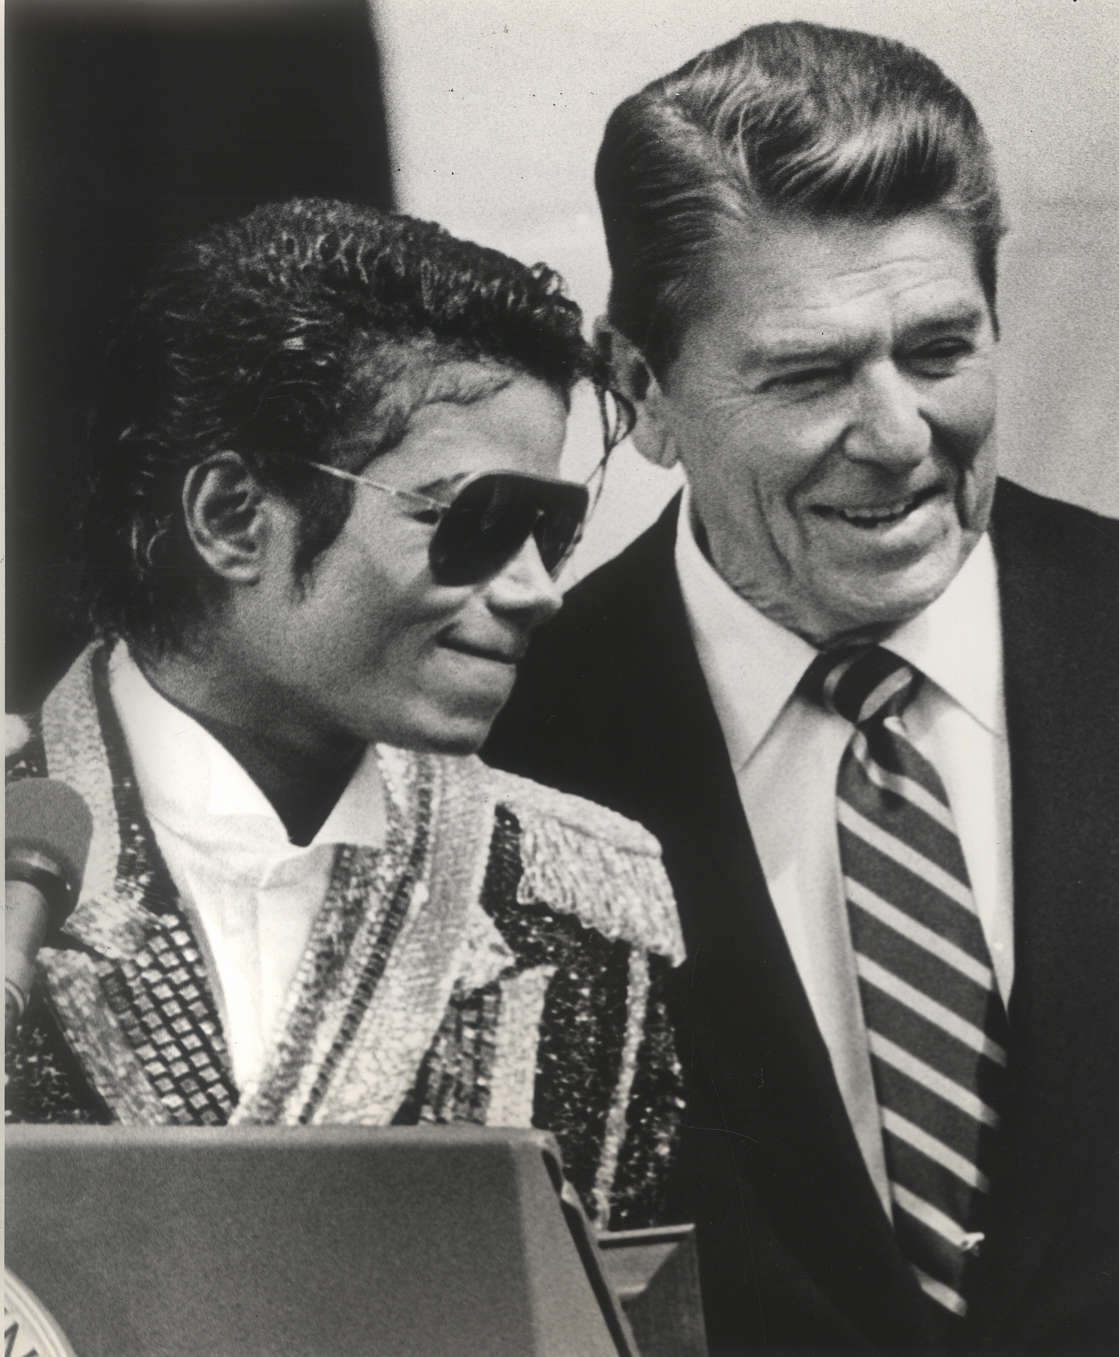 UNSPECIFIED - MAY 14: Michael Jackson meets with President Ronald Reagan at the South Lawn of the White Hose after he was presented with a Presidential Award (Photo by Frank Johnston/Washington Post/Getty Images)